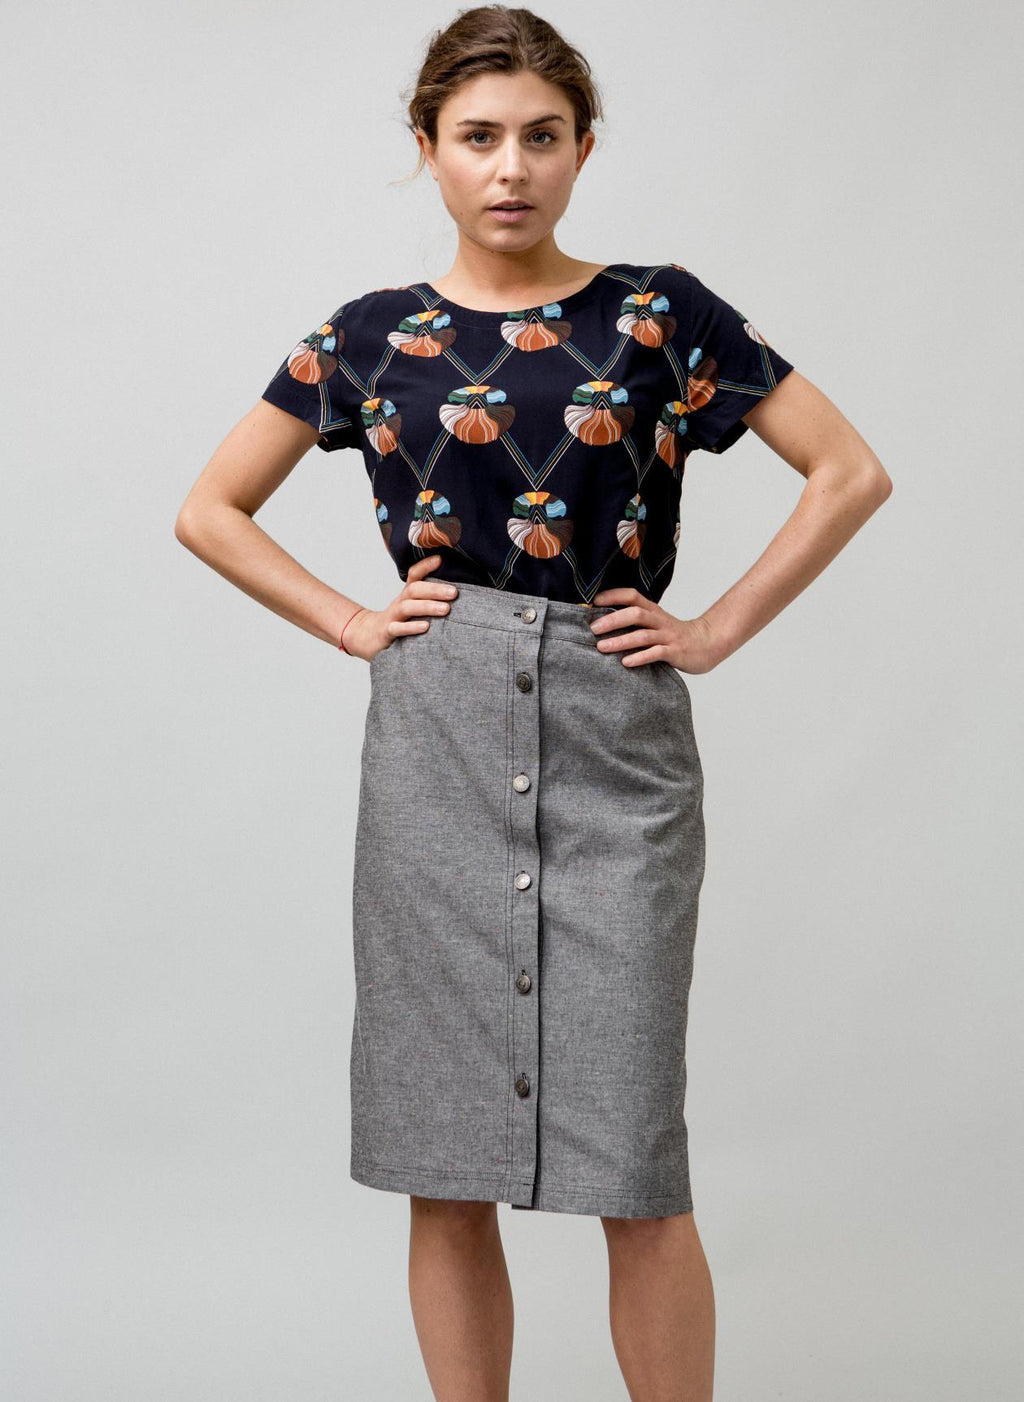 POSEY SKIRT W - BROOKLYN INDUSTRIES